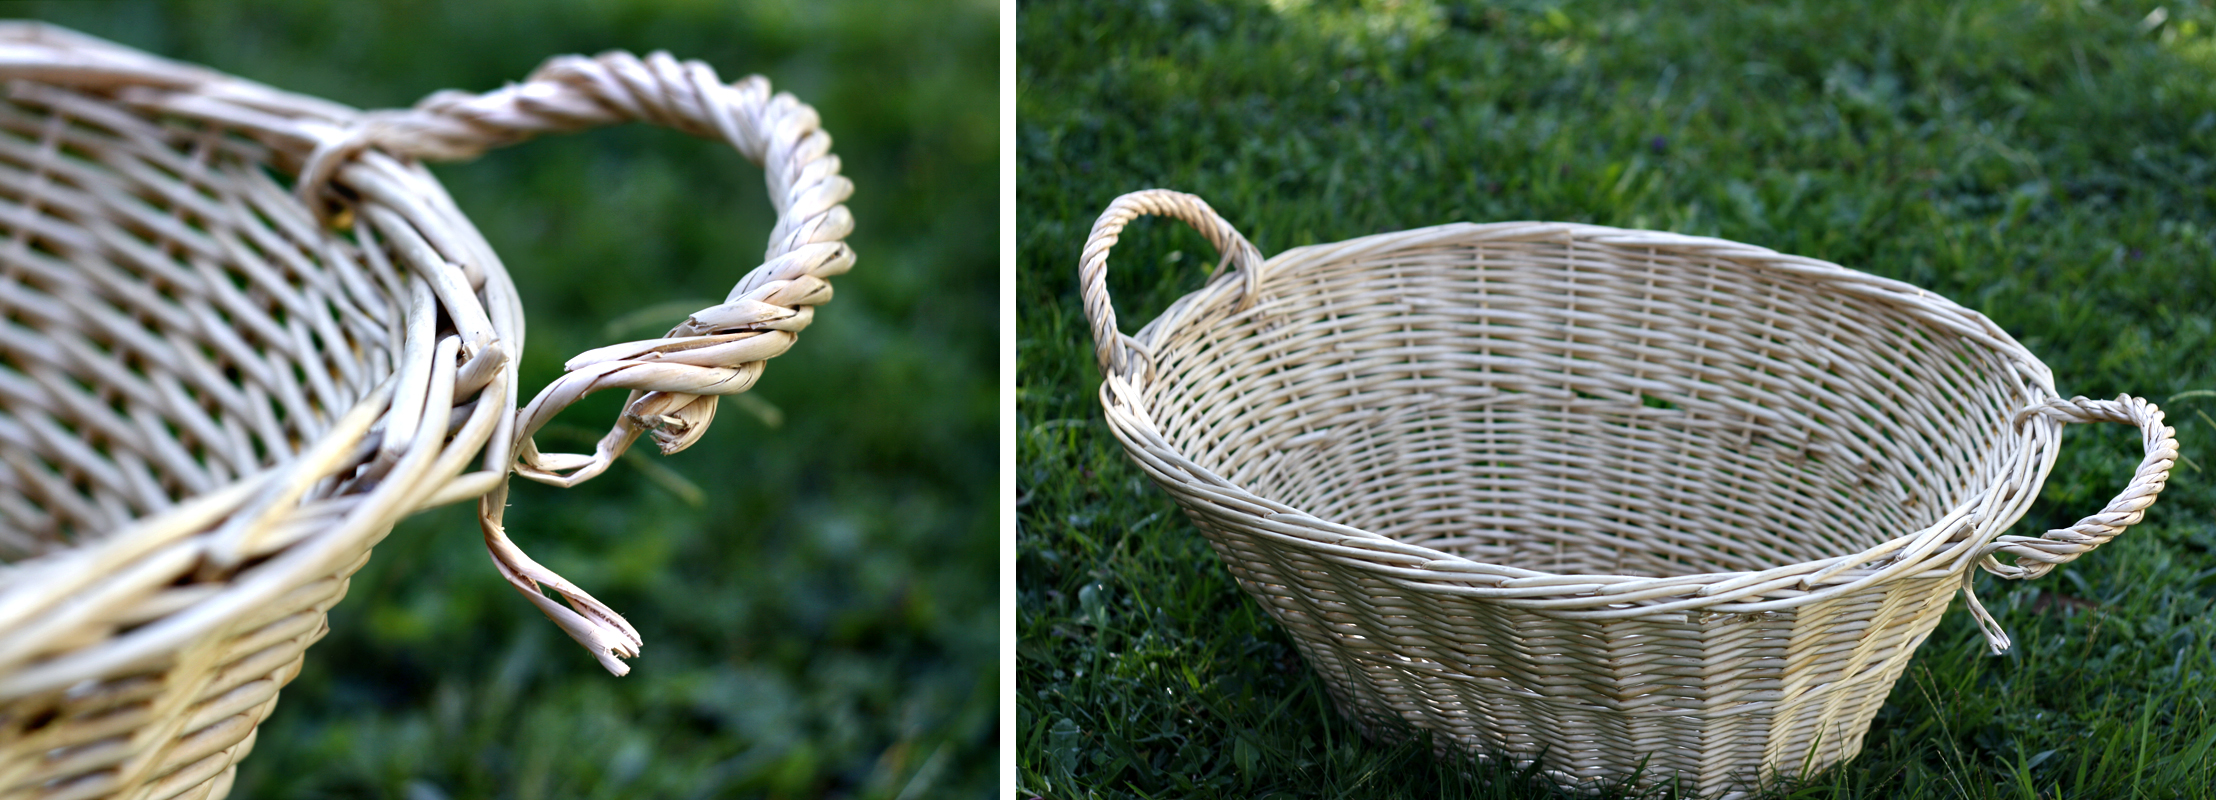 DIY Basket Makeover